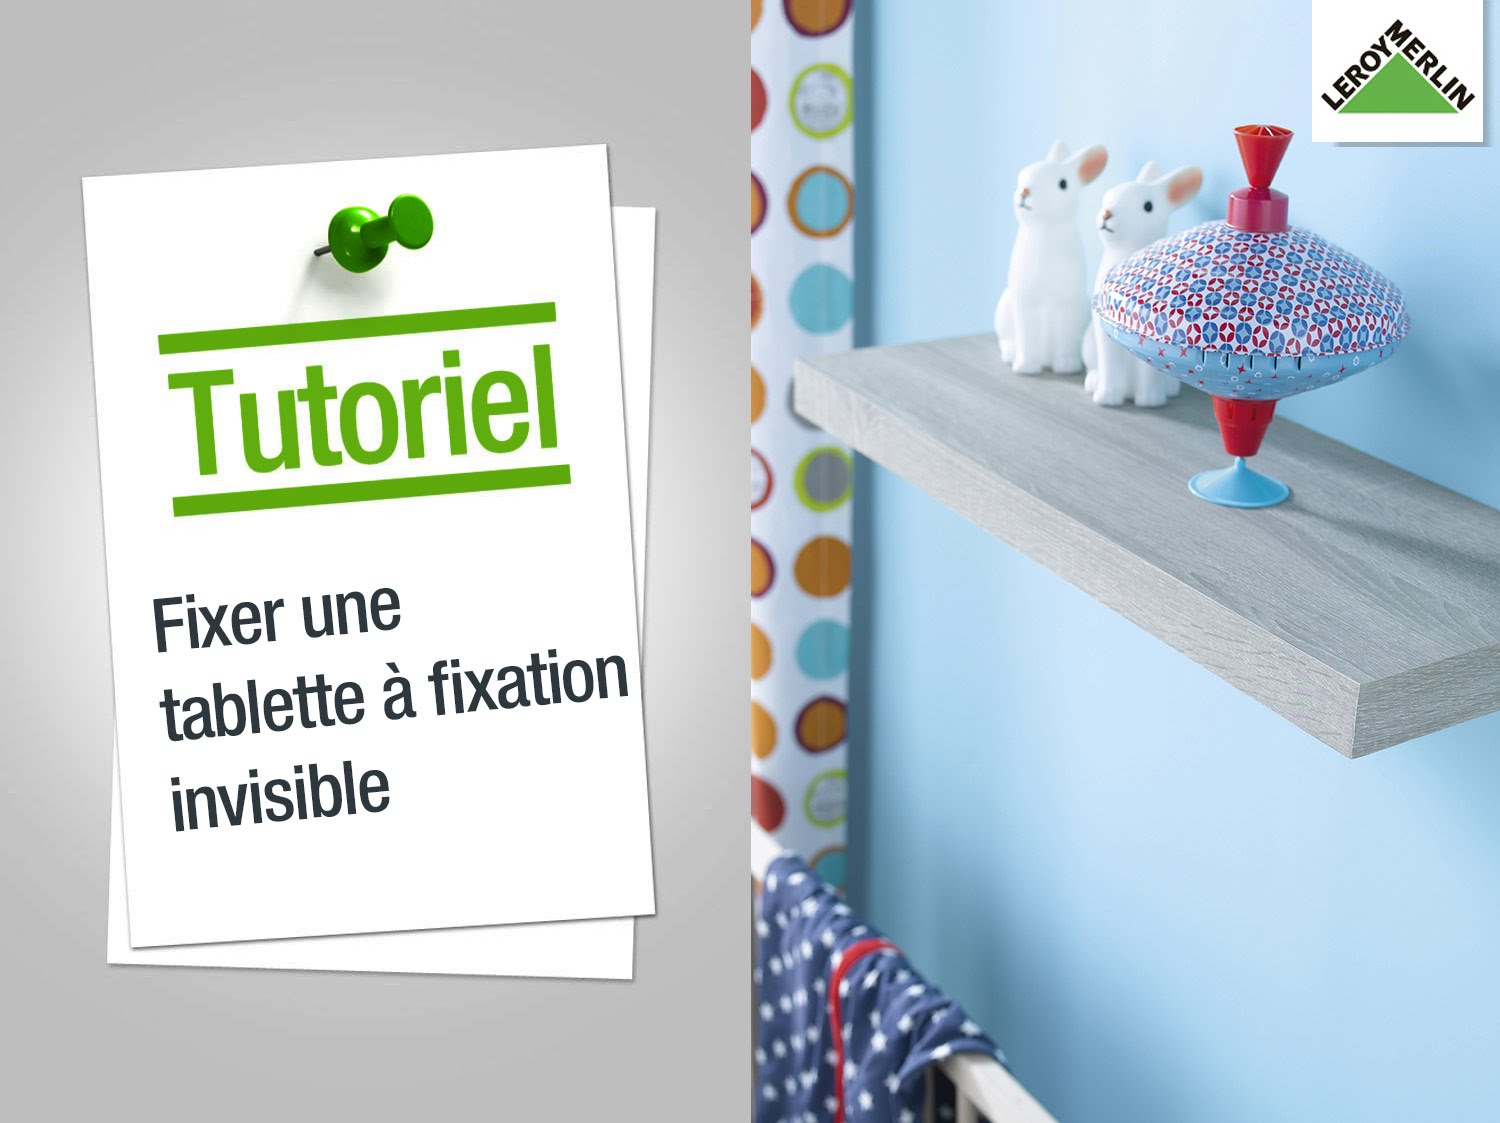 Tablette murale fixation invisible id es de d coration - Idee tablette murale ...